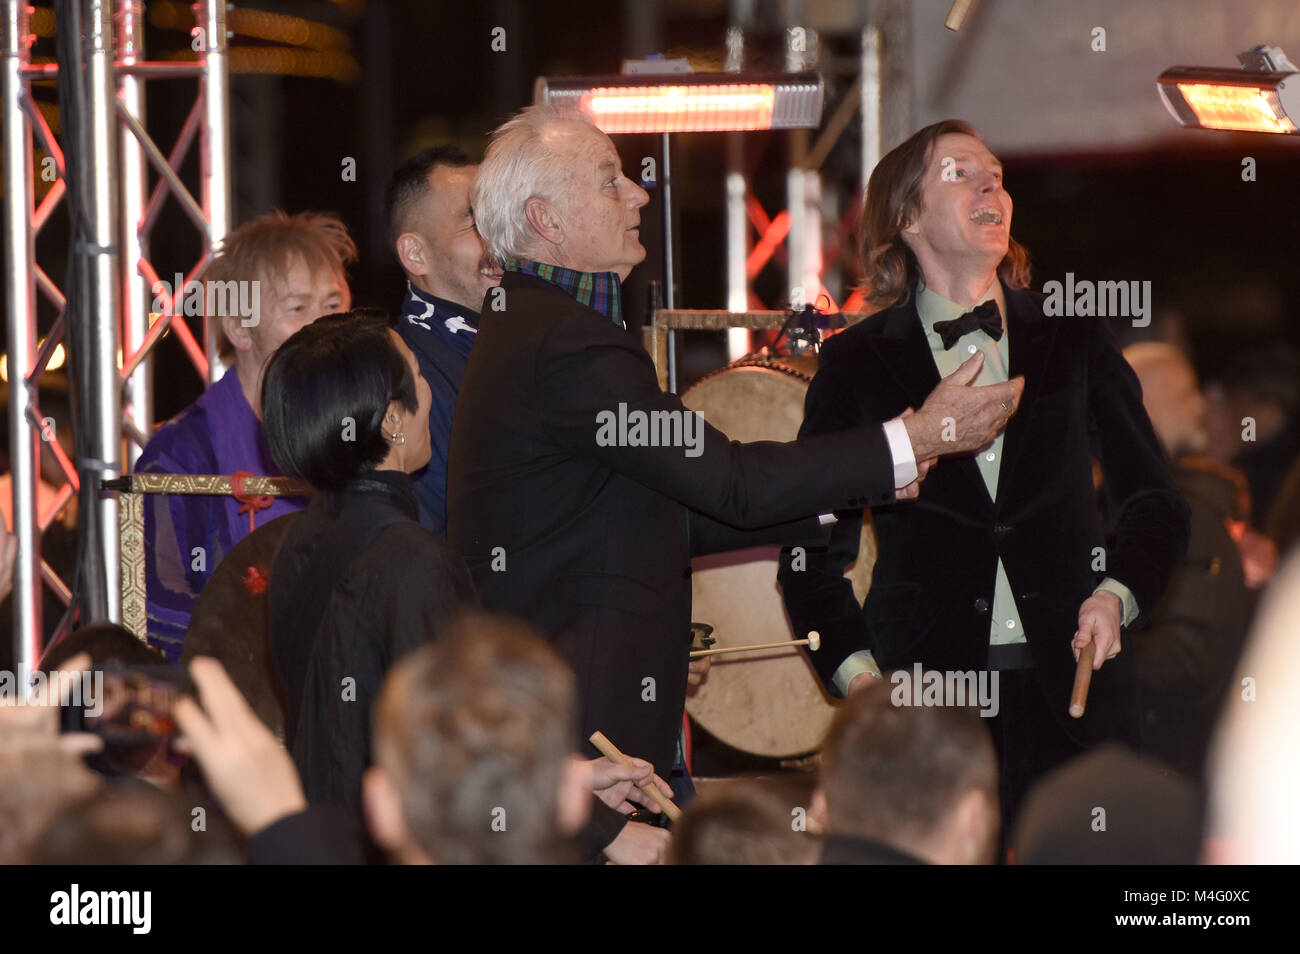 Berlin, Germany. 15th Feb, 2018. Bill Murray and Wes Anderson attending the 'Isle Of Dogs' premiere at the - Stock Image